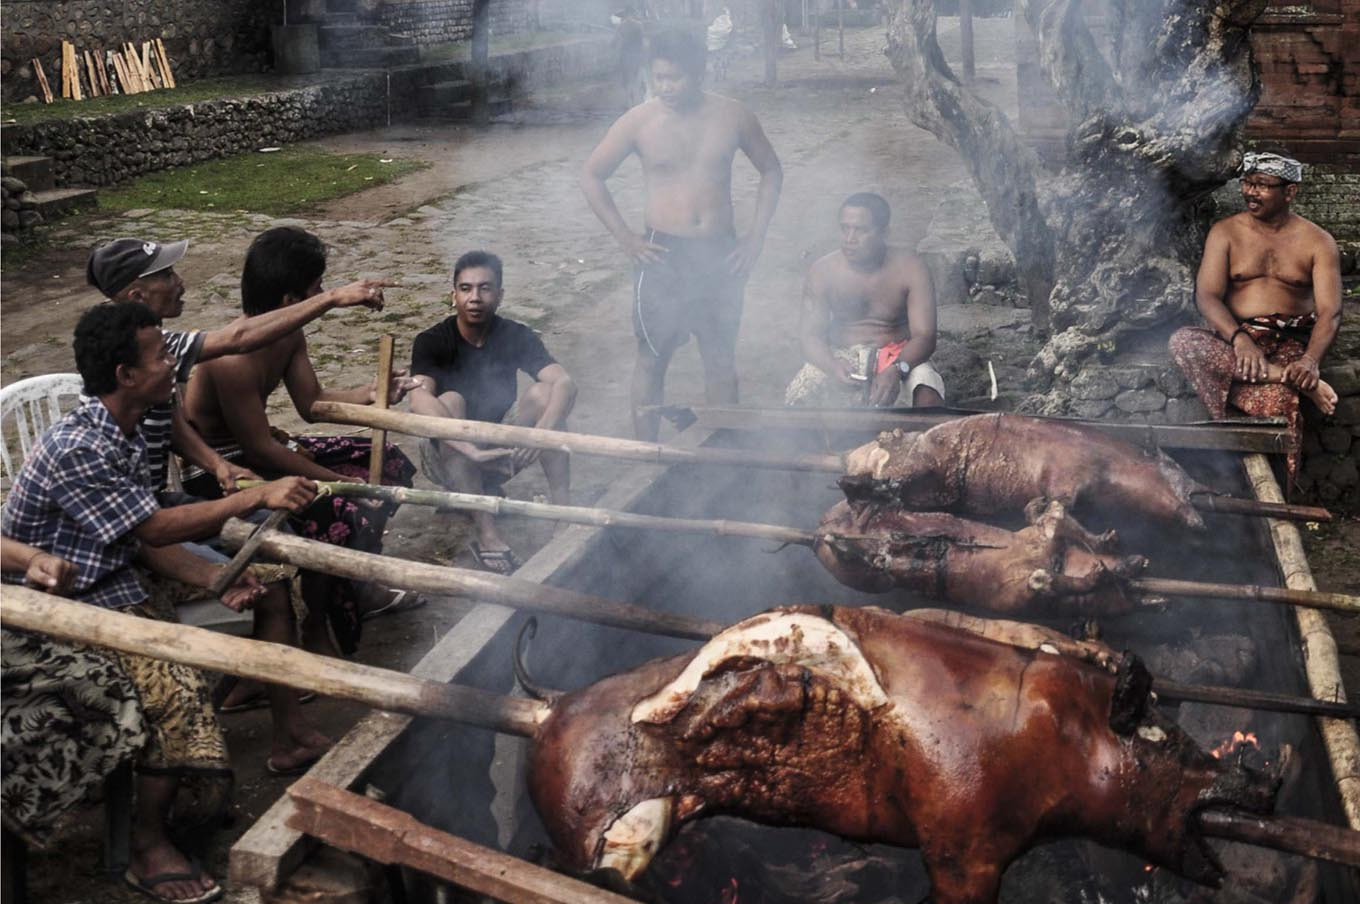 Take it easy on pork eaters: Indonesian Muslims call for tolerance